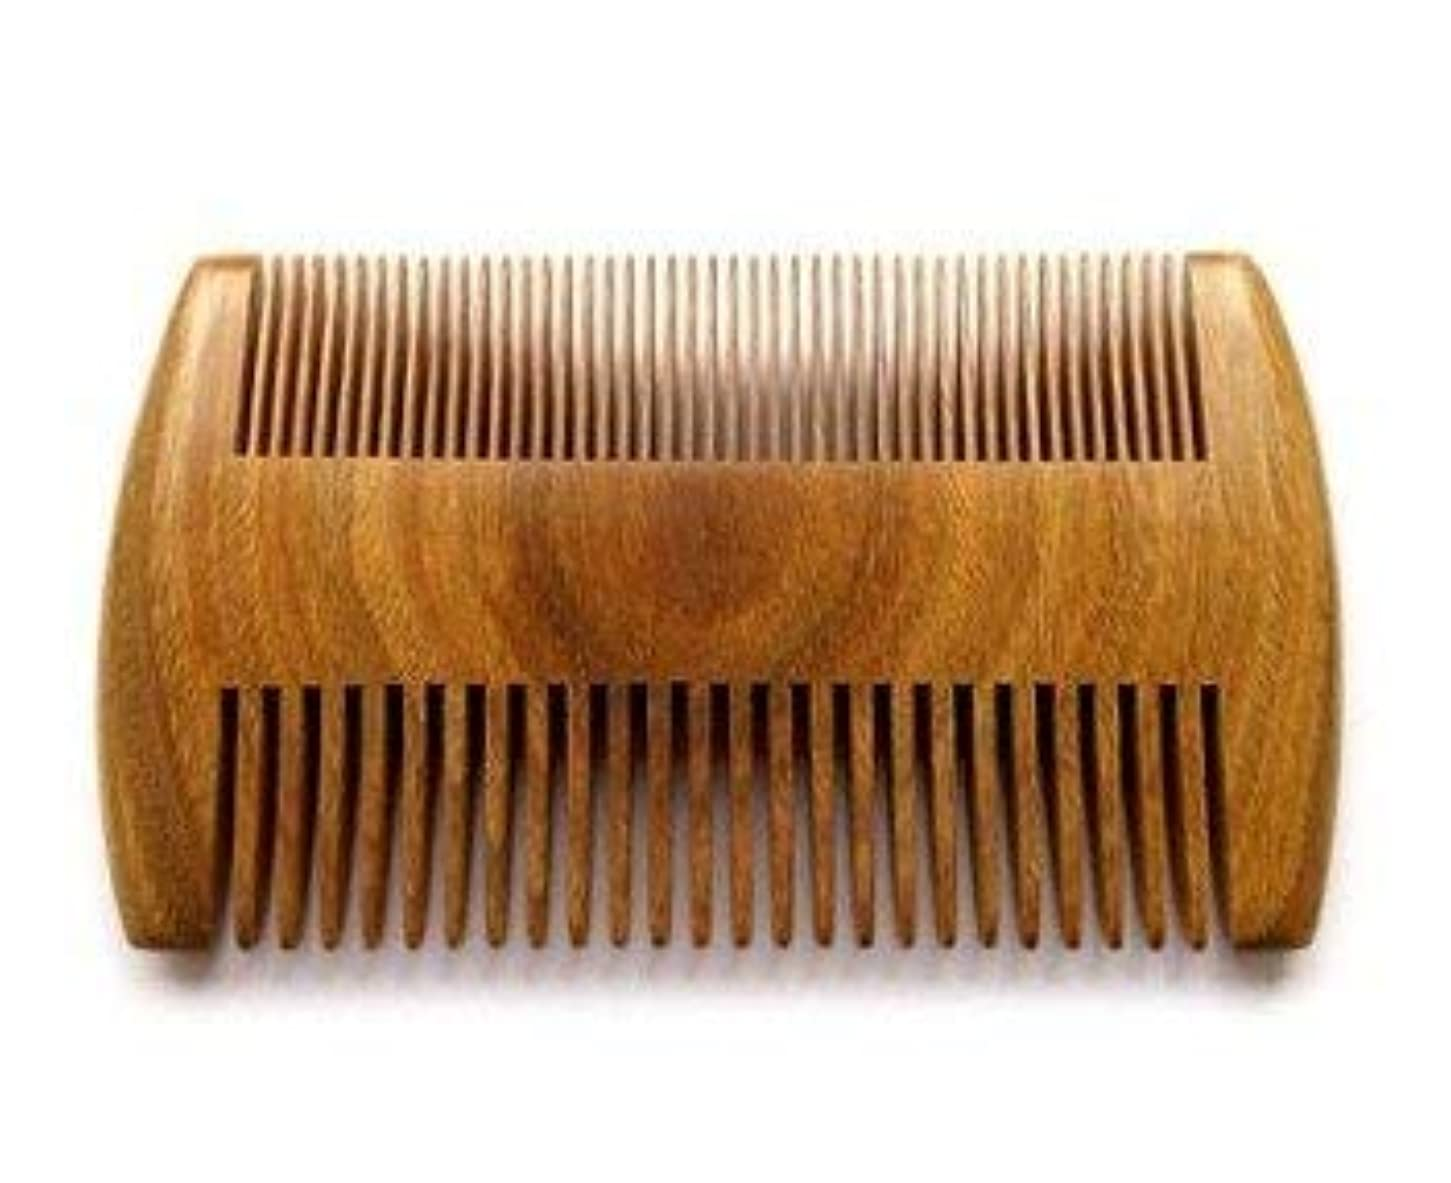 手首輸血ウォルターカニンガムMyhsmooth GS-SM-NF Handmade Natural Green Sandalwood No Static Comb Pocket Comb Perfect Beard Comb with Aromatic...